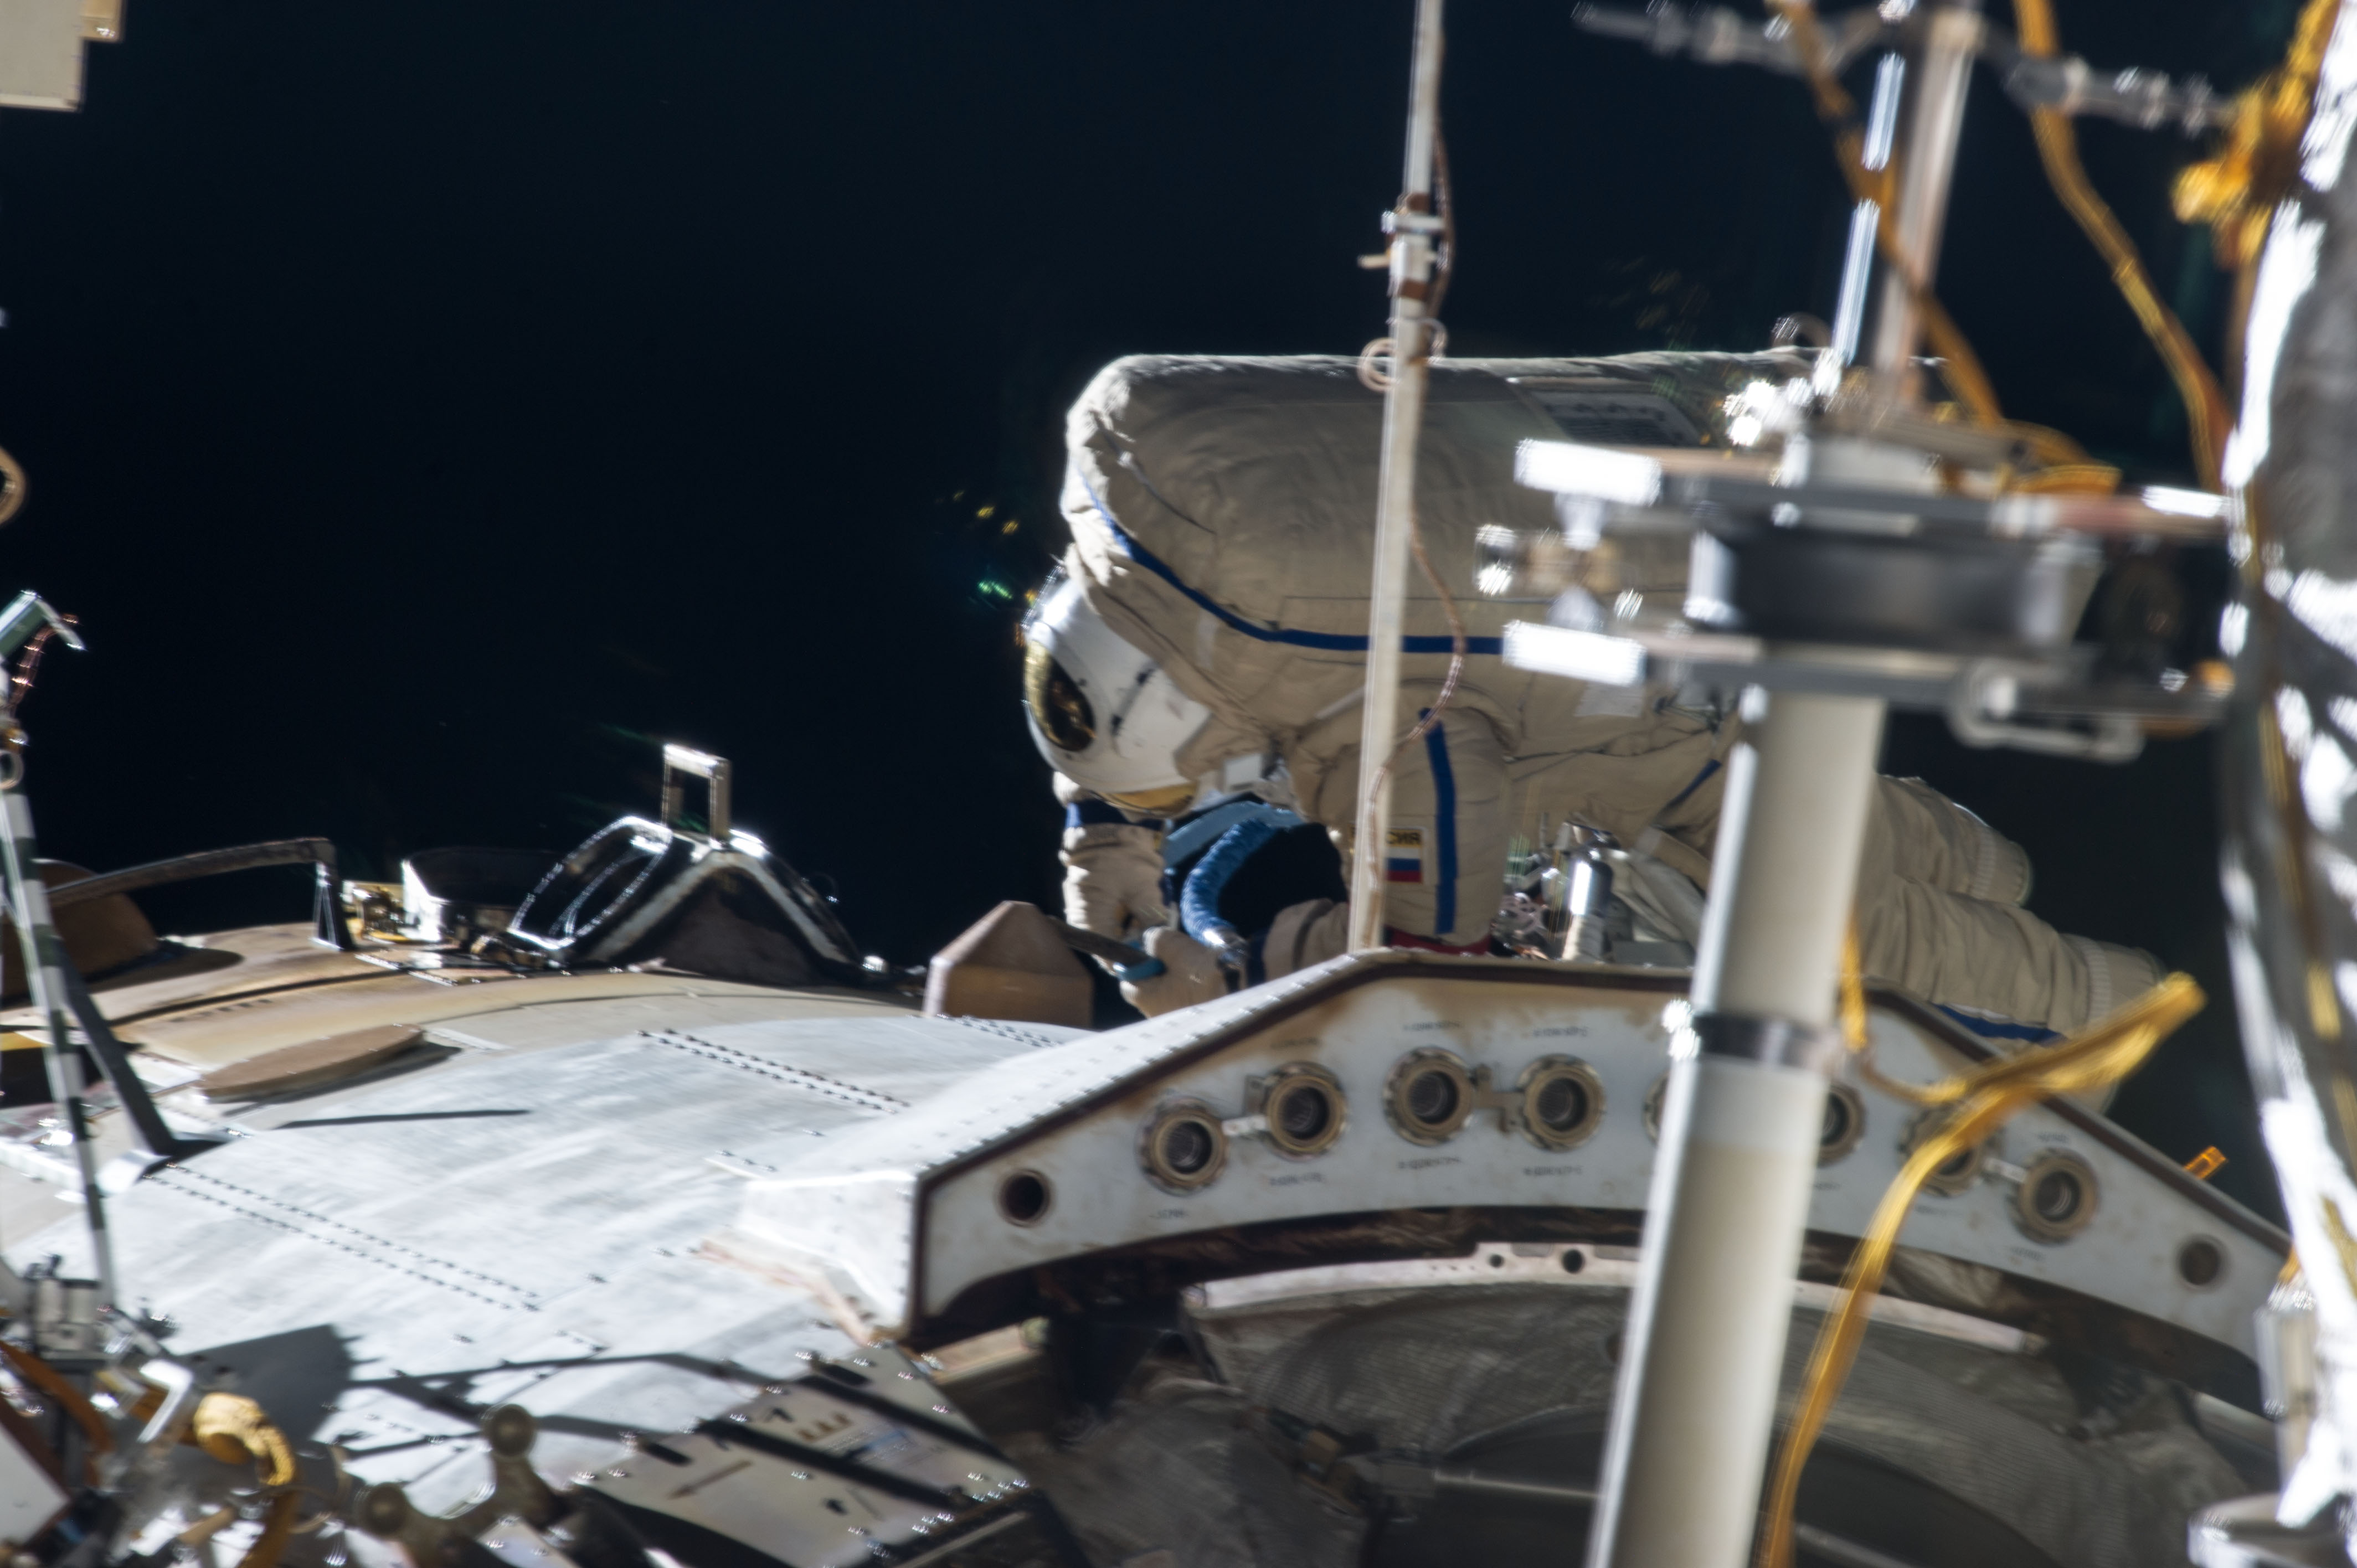 Russian Cosmonauts Work on the ISS